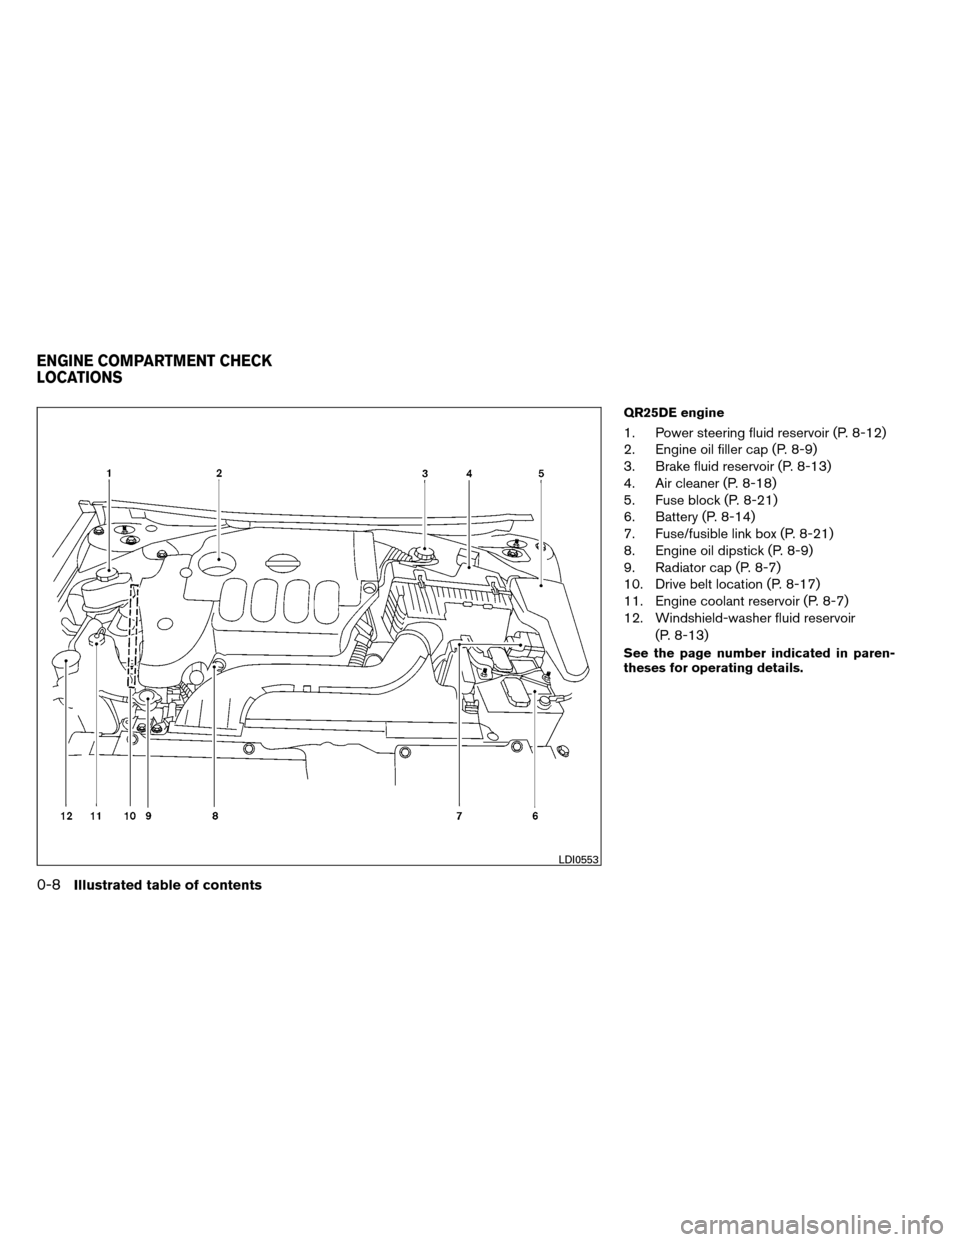 NISSAN ALTIMA COUPE 2013 D32 / 4.G User Guide QR25DE engine 1. Power steering fluid reservoir (P. 8-12) 2. Engine oil filler cap (P. 8-9) 3. Brake fluid reservoir (P. 8-13) 4. Air cleaner (P. 8-18) 5. Fuse block (P. 8-21) 6. Battery (P. 8-14) 7.